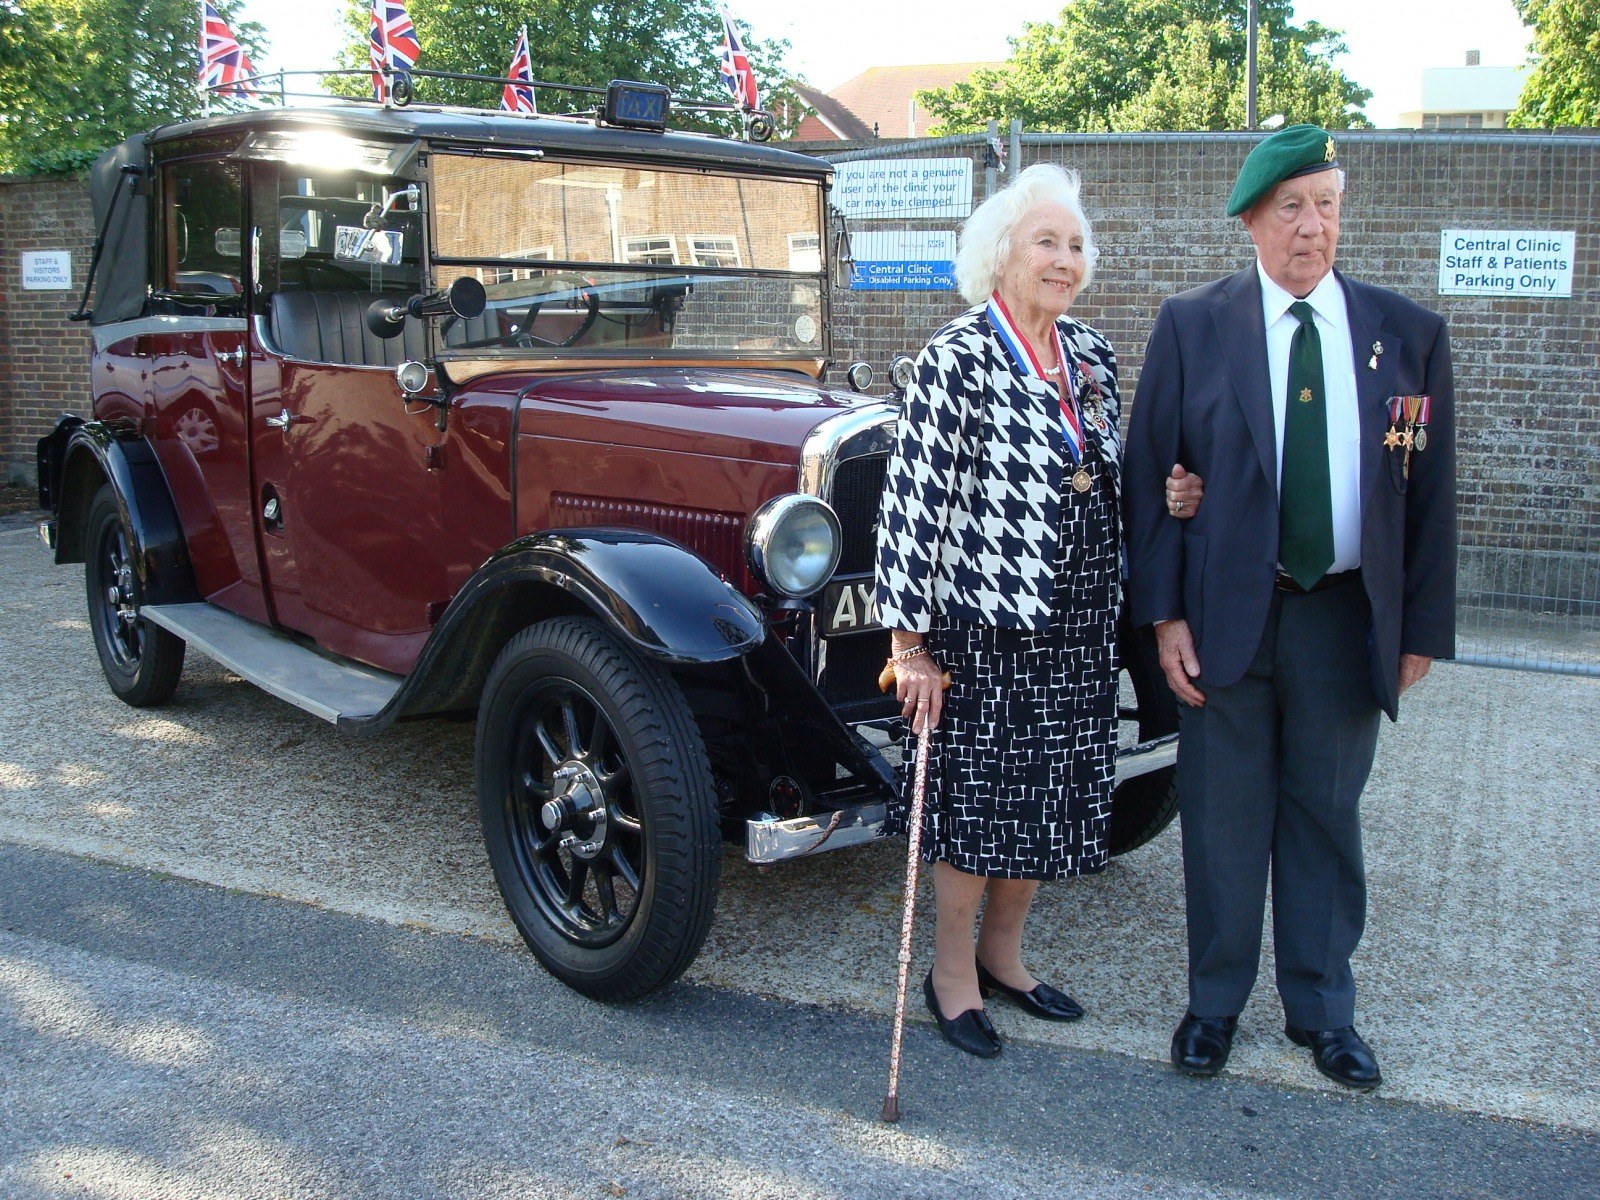 Military Veterans' Trip to Worthing - with Dame Vera Lynn